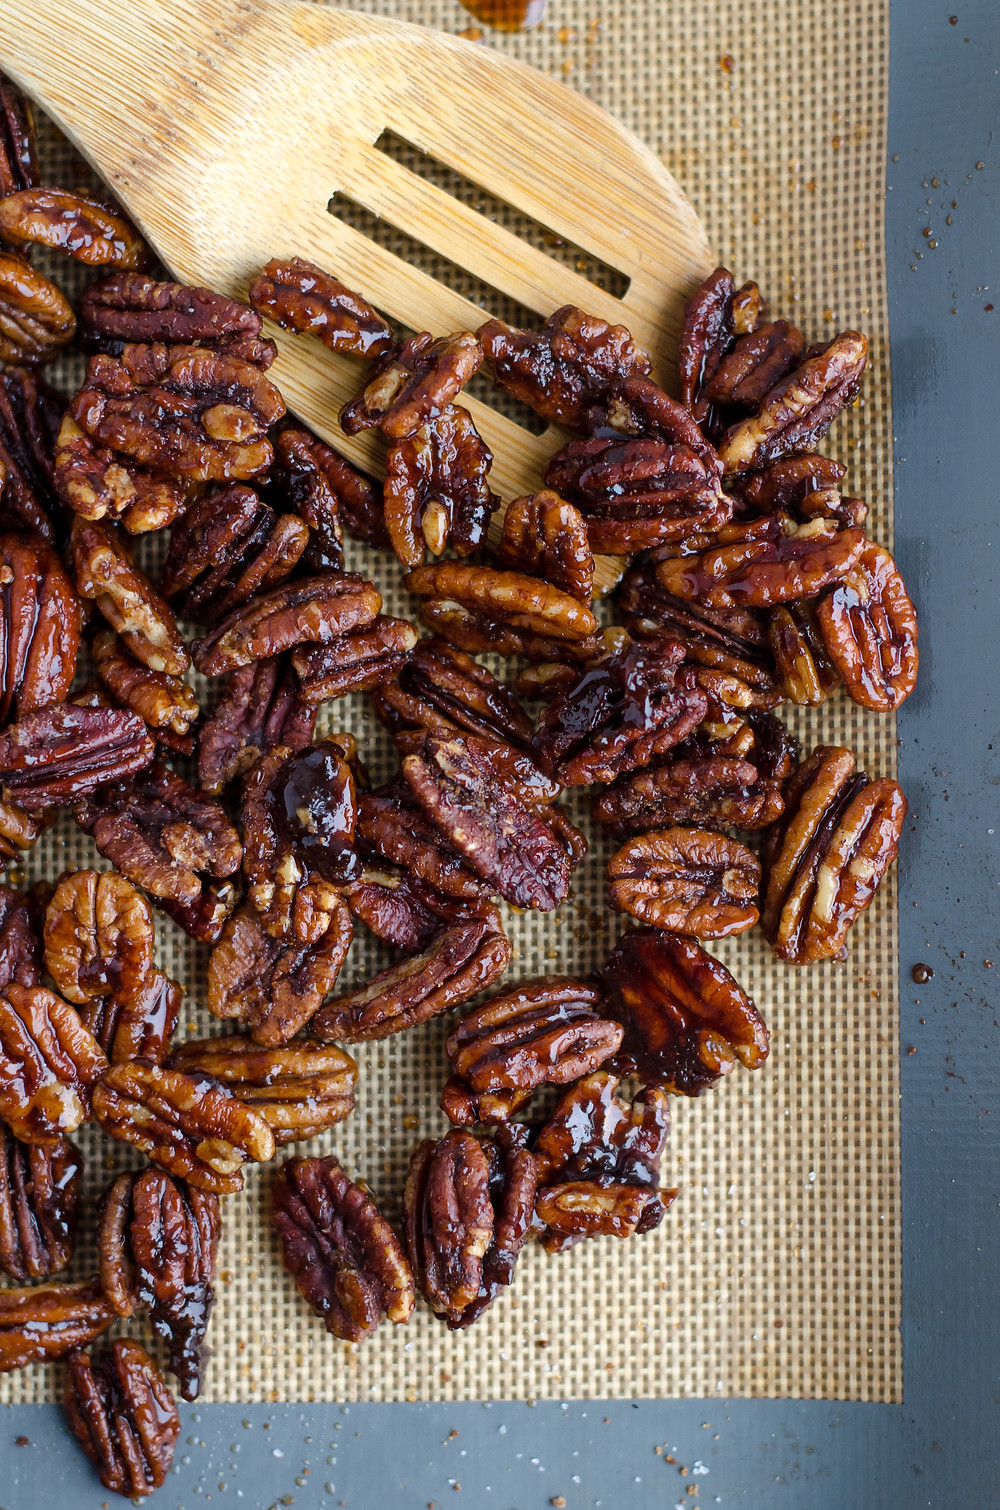 pecans Nuts Are a Great Source of Many Nutrients